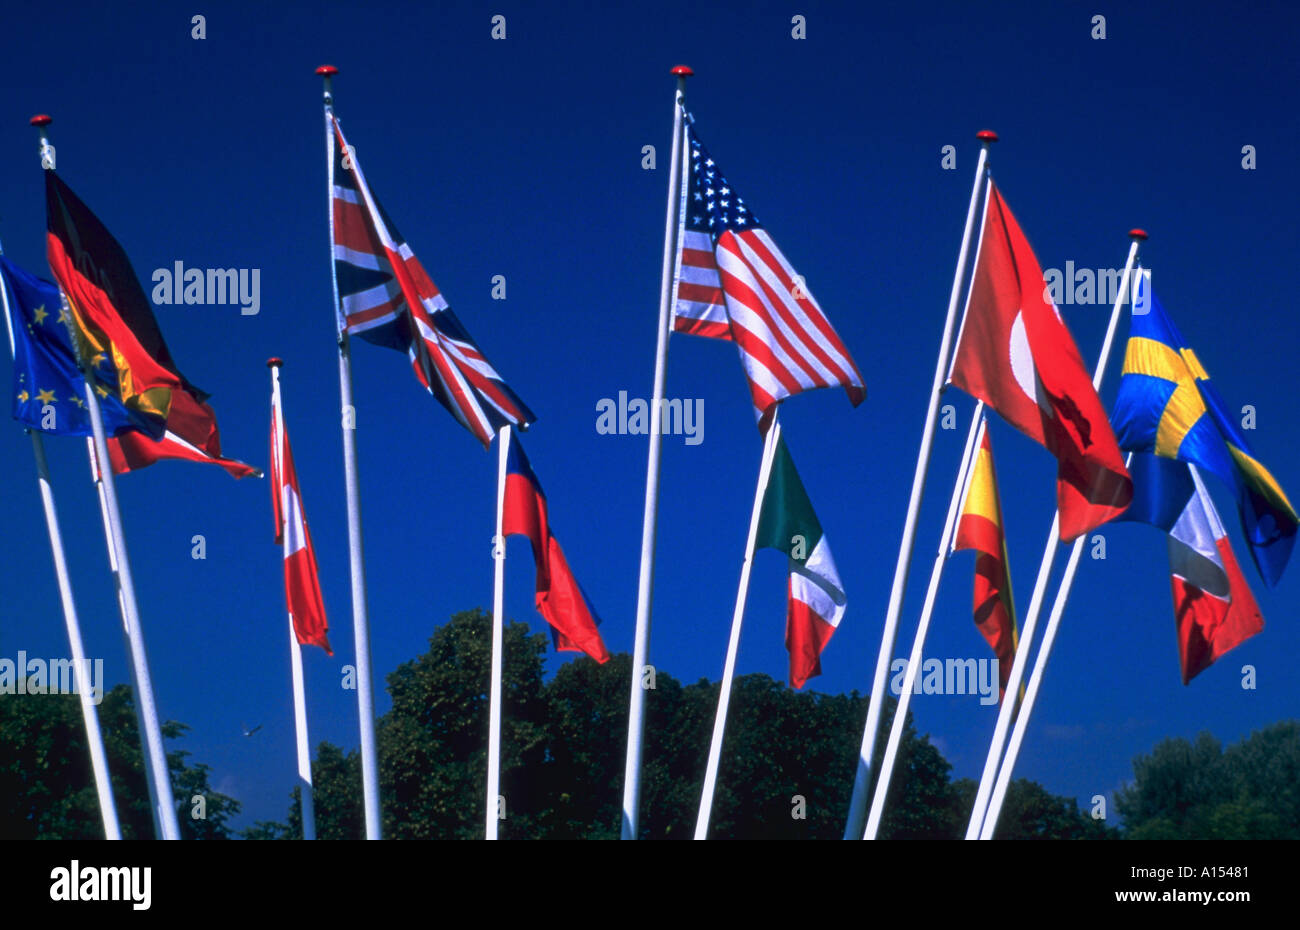 A display of international flags blowing from flag poles outside - Stock Image